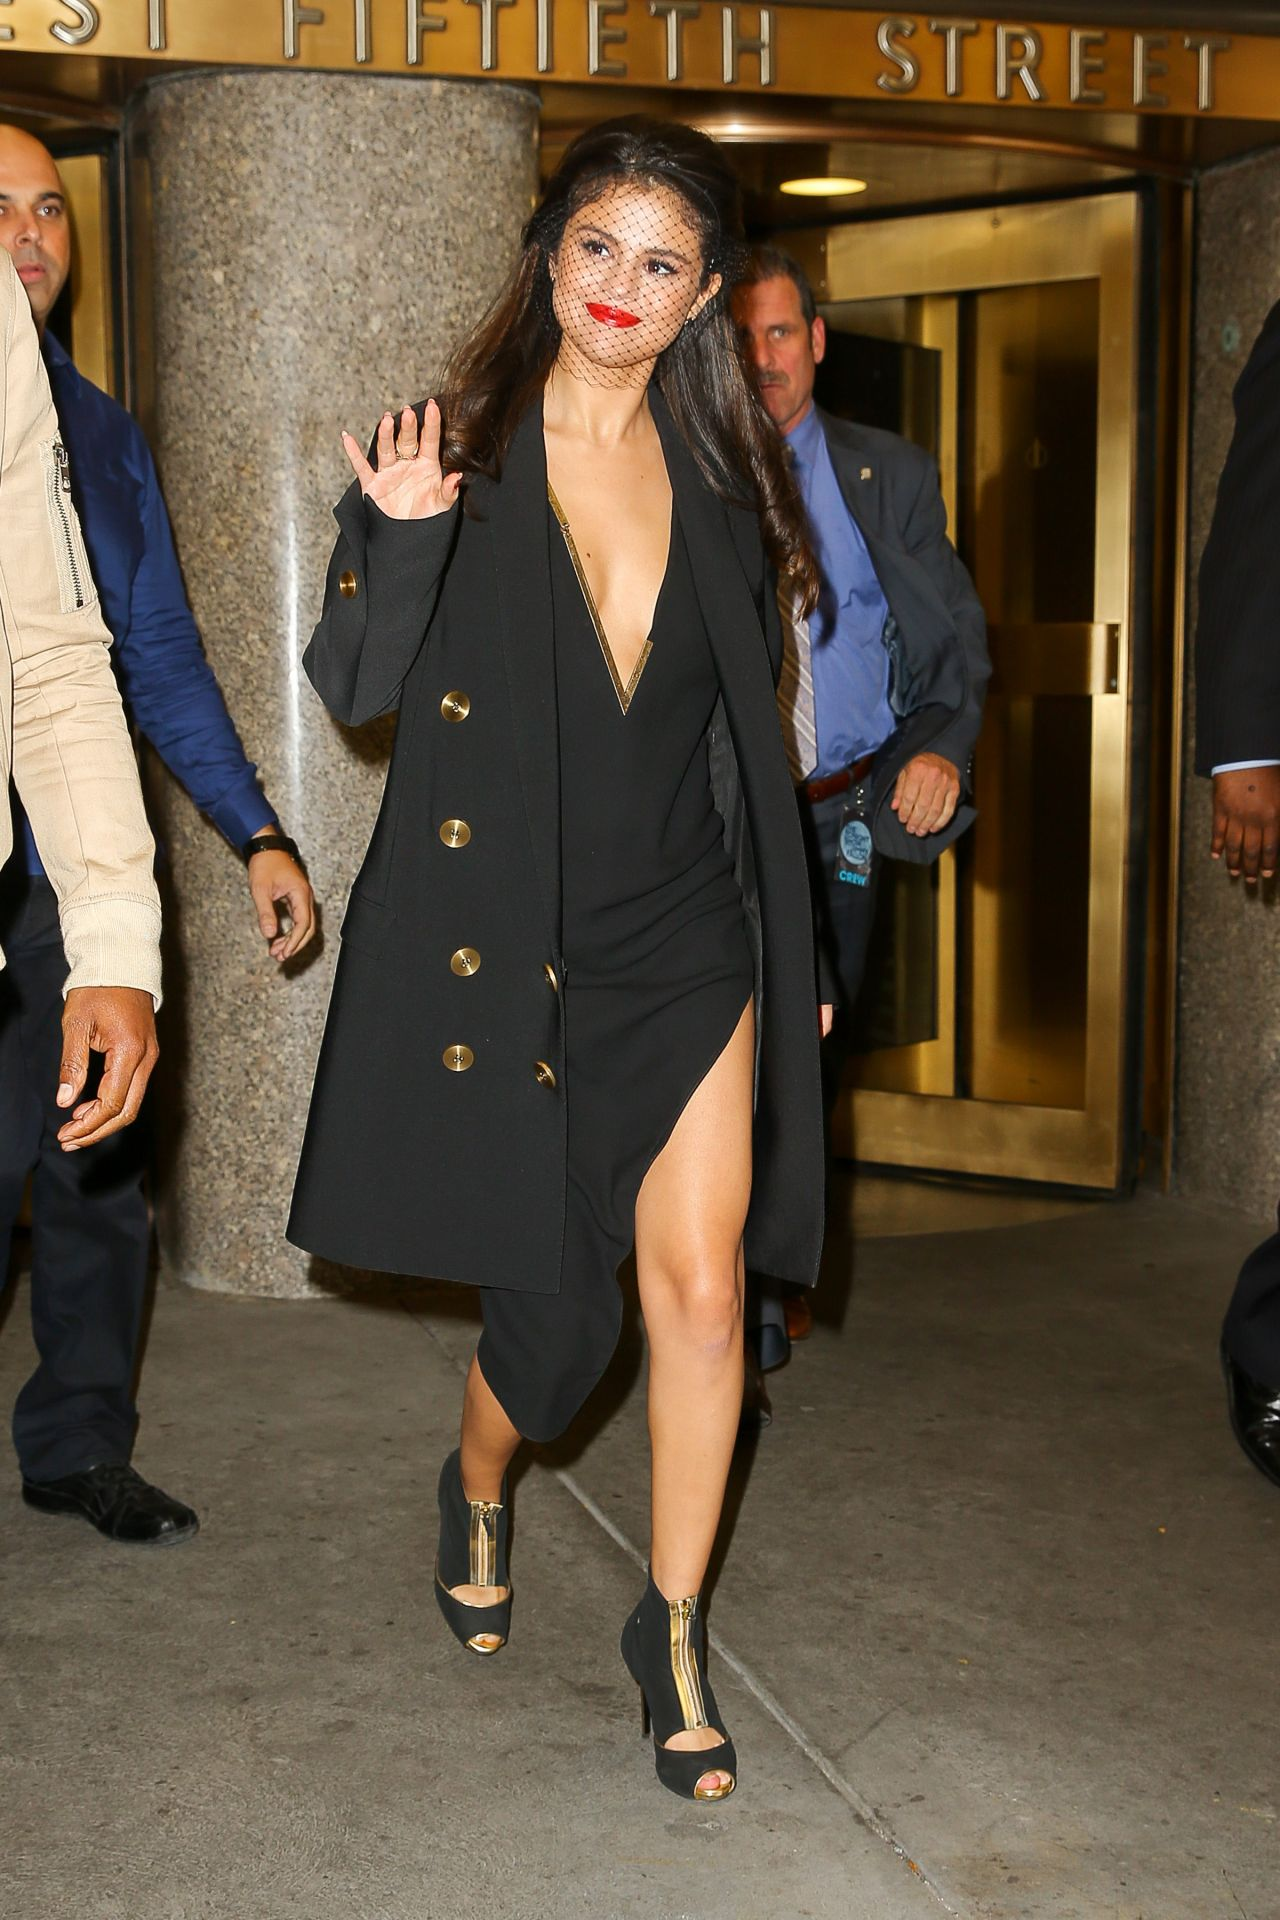 selena-gomez-leaving-the-tonight-show-studios-in-nyc-october-2015_2